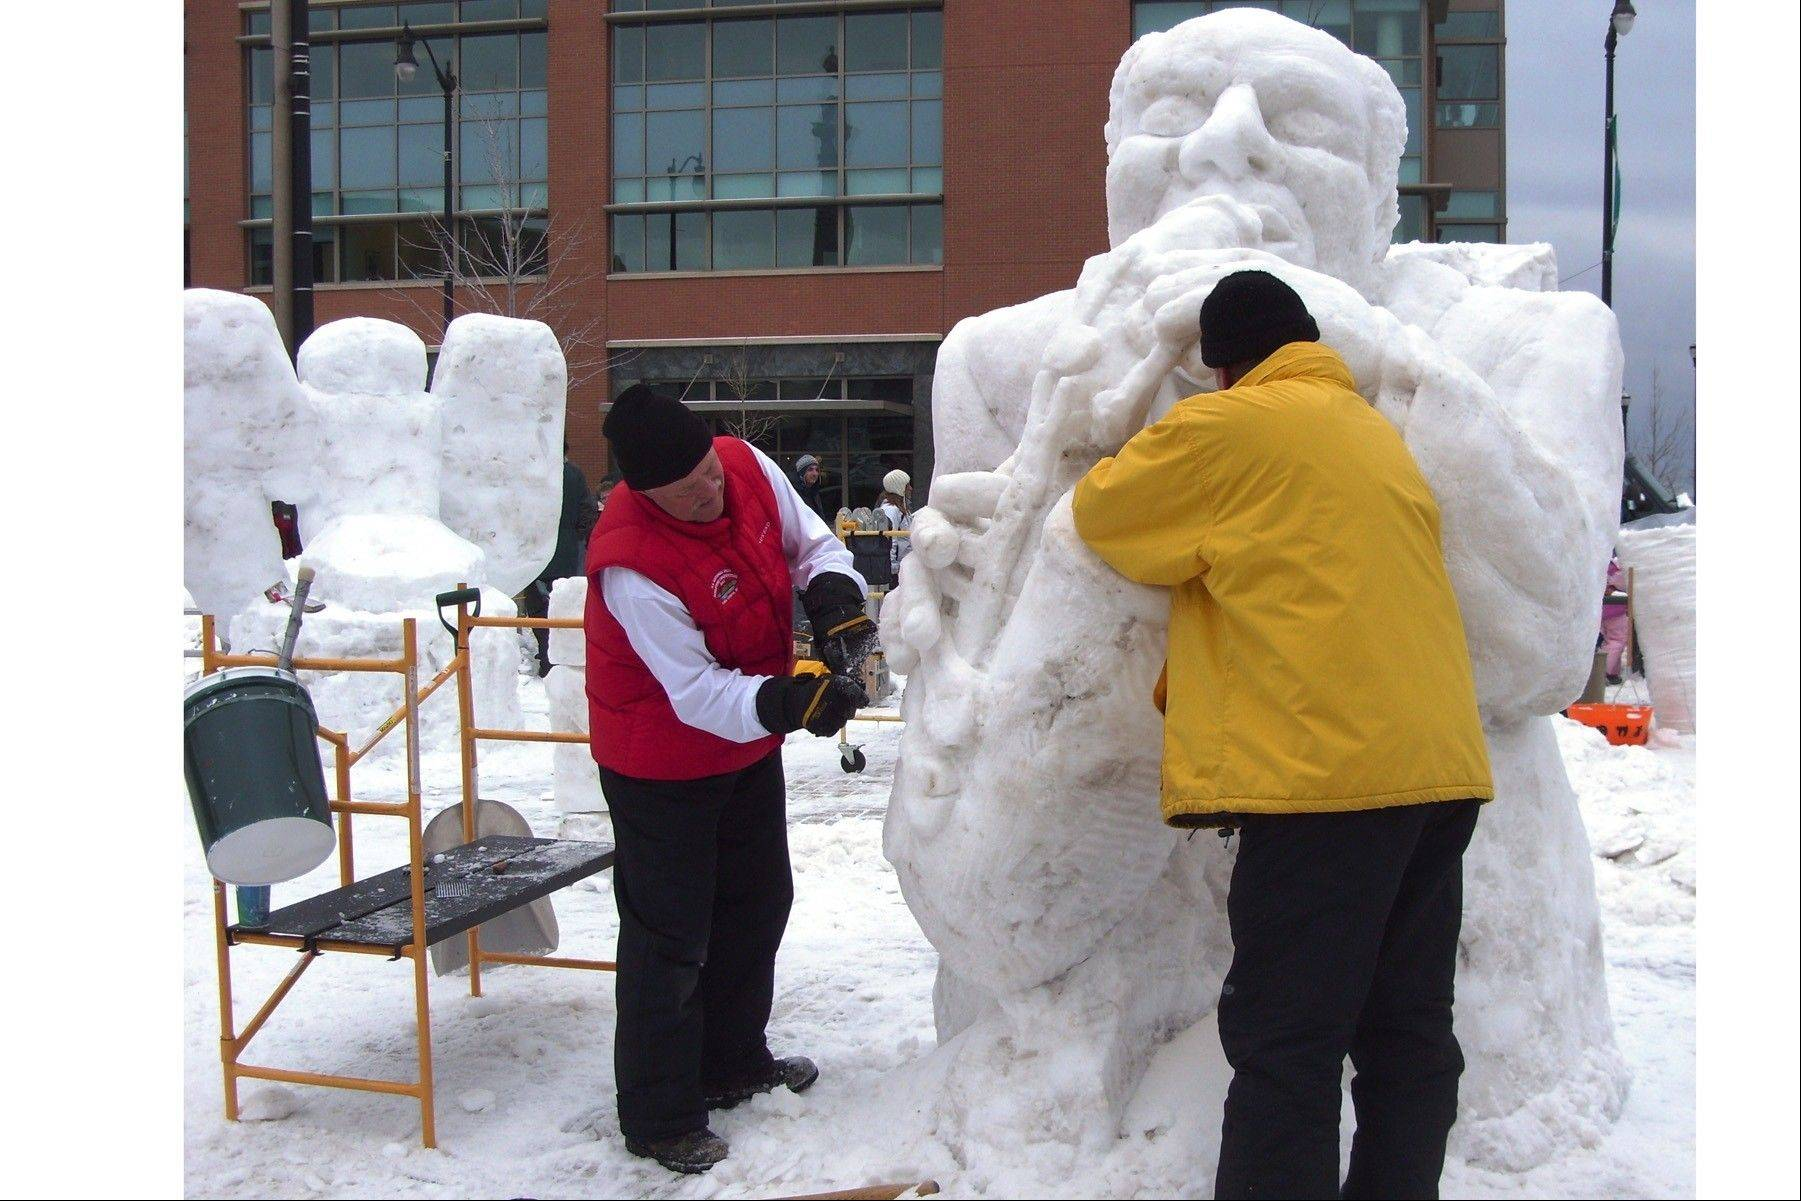 The Wisconsin State Snow Sculpting Competition starts Friday, Jan. 10, at Monument Square in downtown Racine, Wis. It's part of The Big Chill Ice and Snow Festival, which offers a menu of family activities.